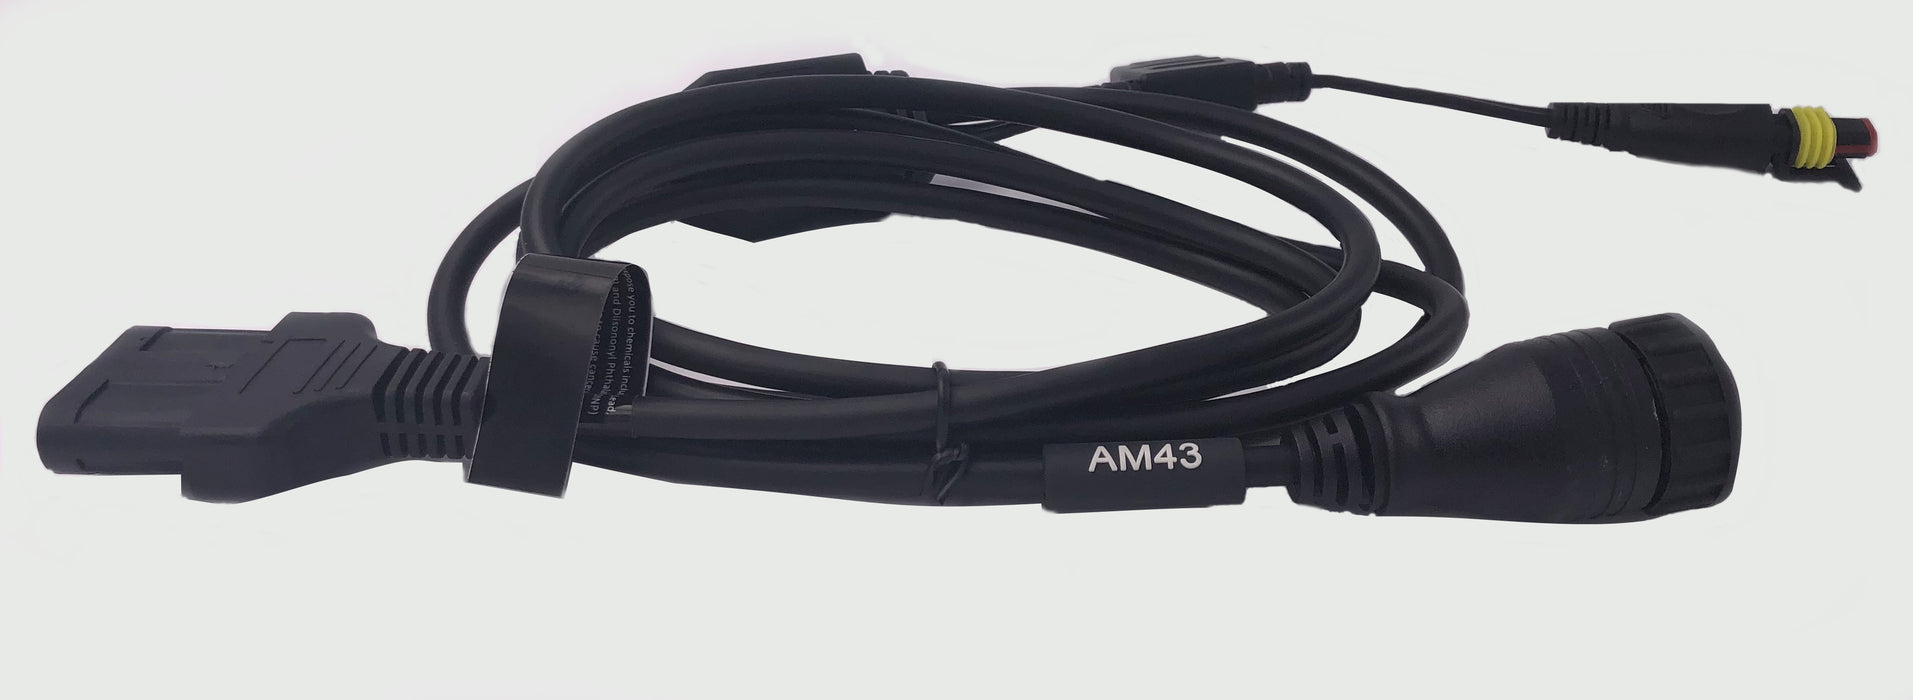 TEXA Marine (AM43)- OBD-M Cable for Mercruiser, Volvo, and More